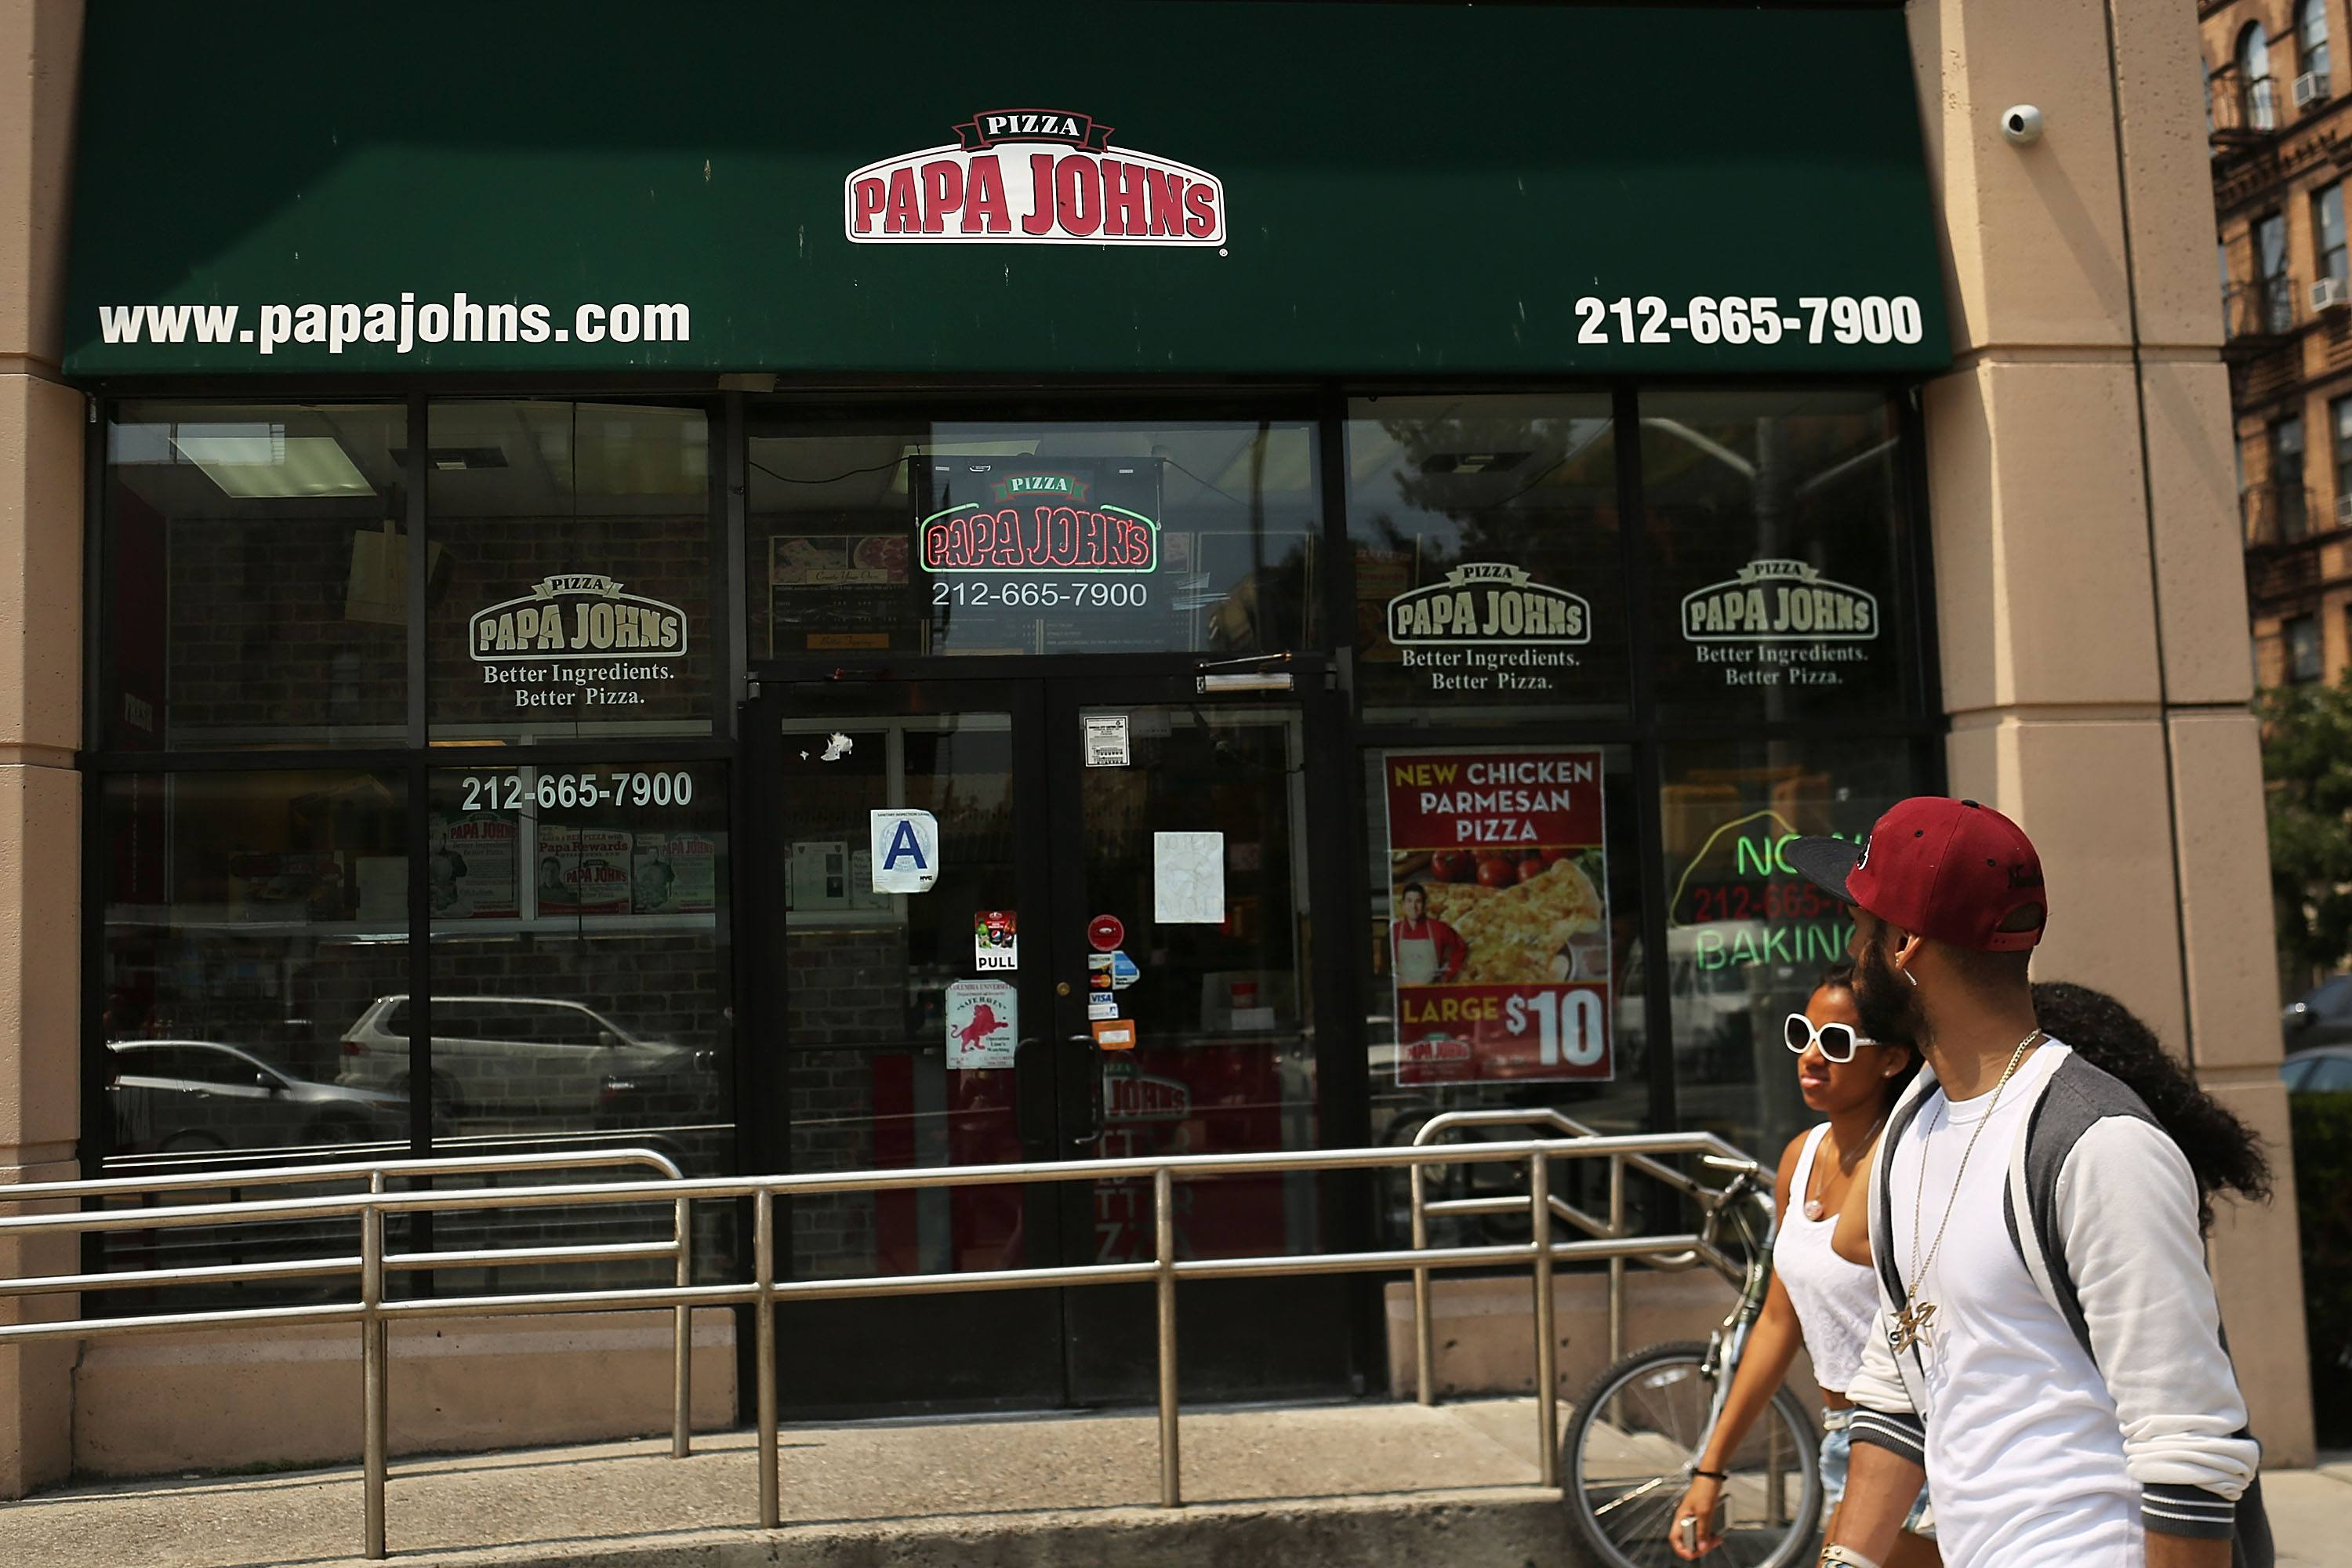 People walk by a Papa Johns pizza restaurant on August 9, 2012 in New York City.